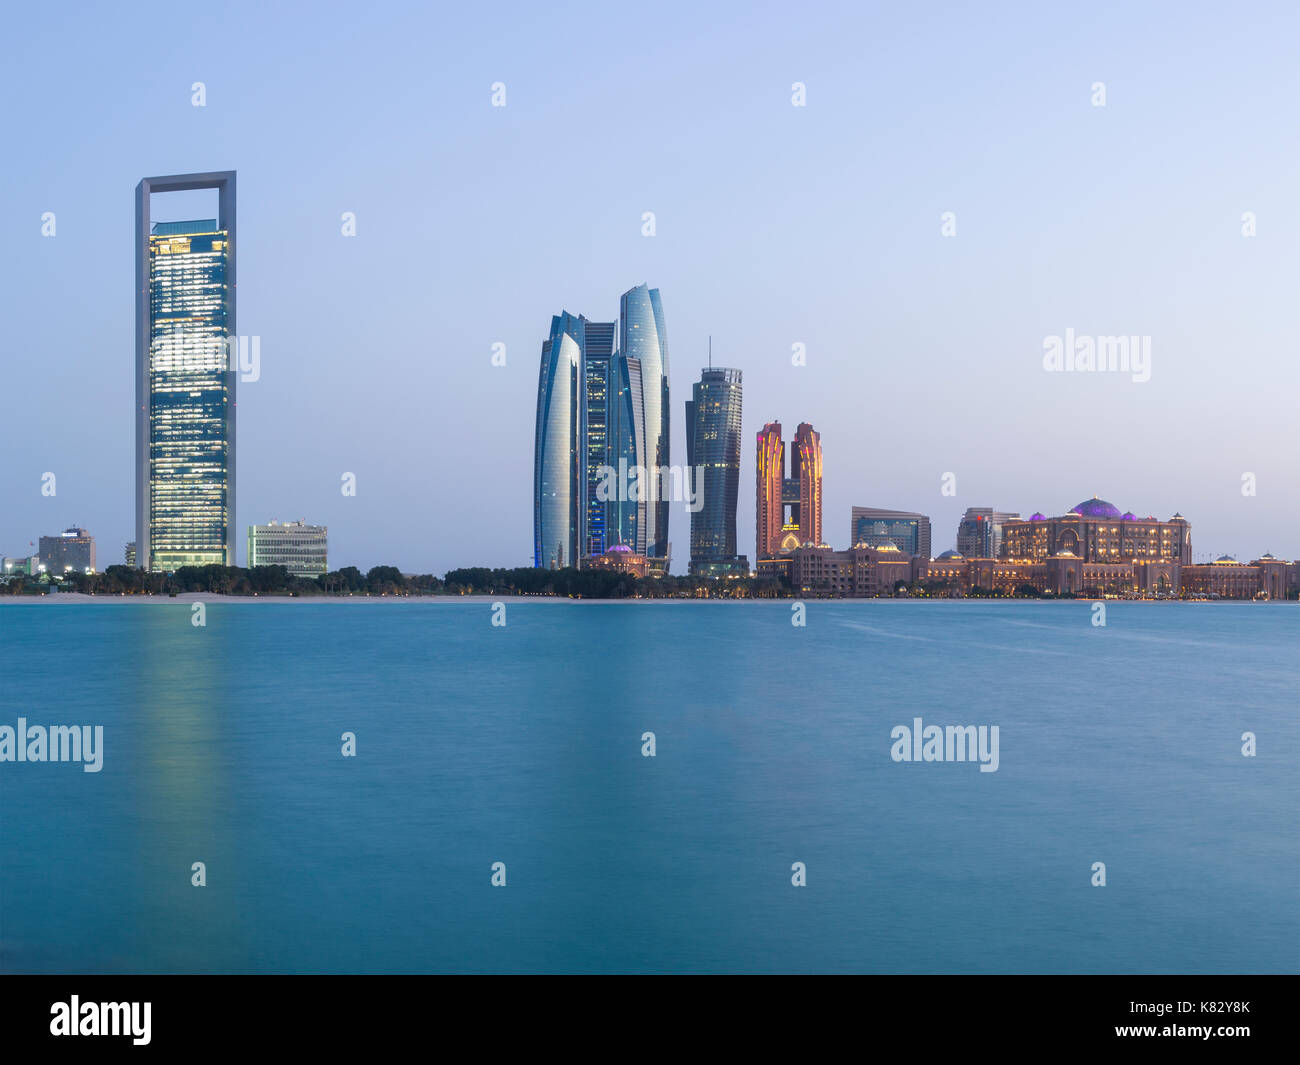 Etihad Towers and Emirates Palace hotel viewed from the Breakwater, Abu Dhabi, United Arab Emirates, Middle East - Stock Image